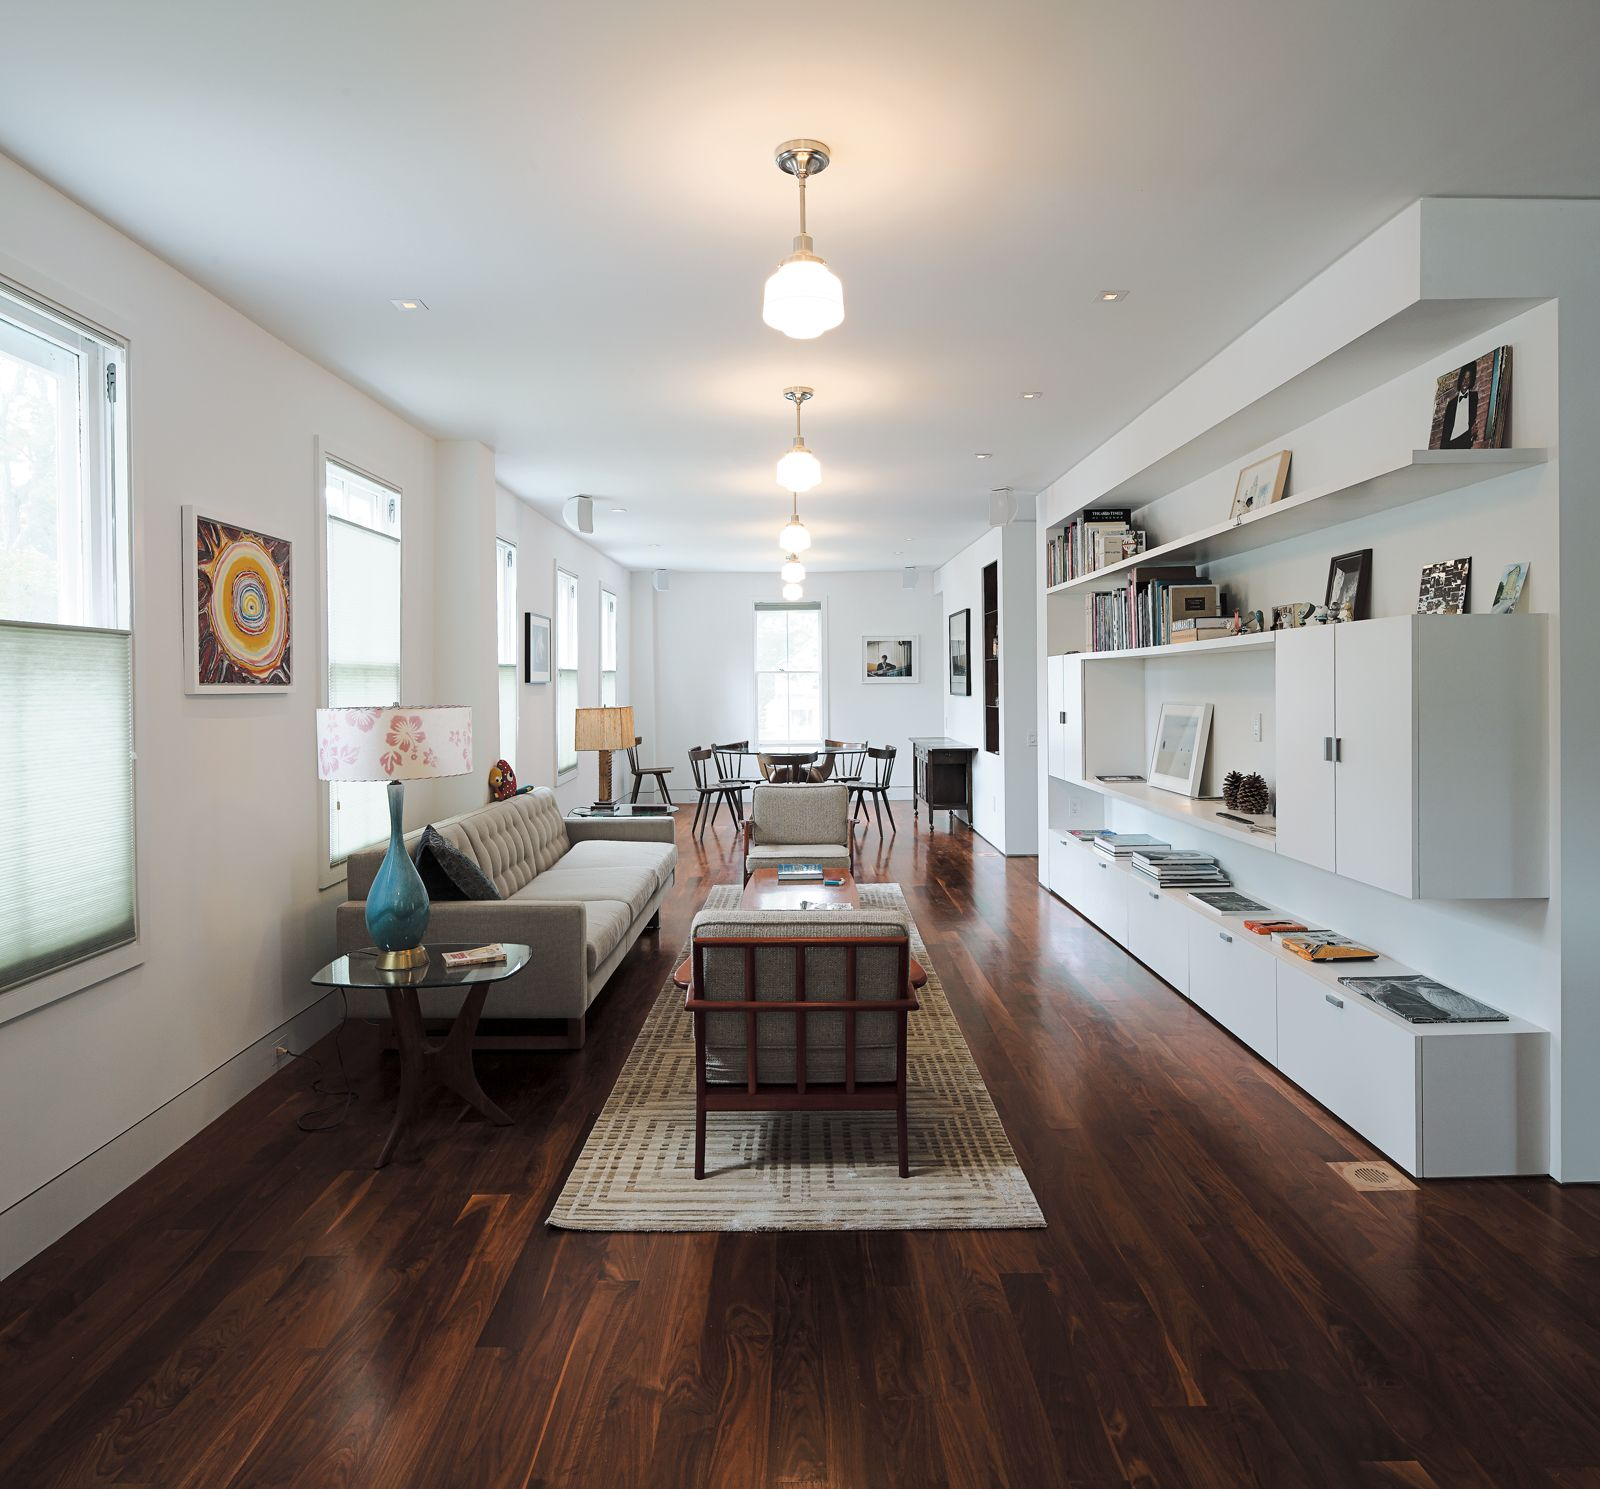 Ninety Degrees Apartments: The Living-dining Room Occupies What Was Formerly A